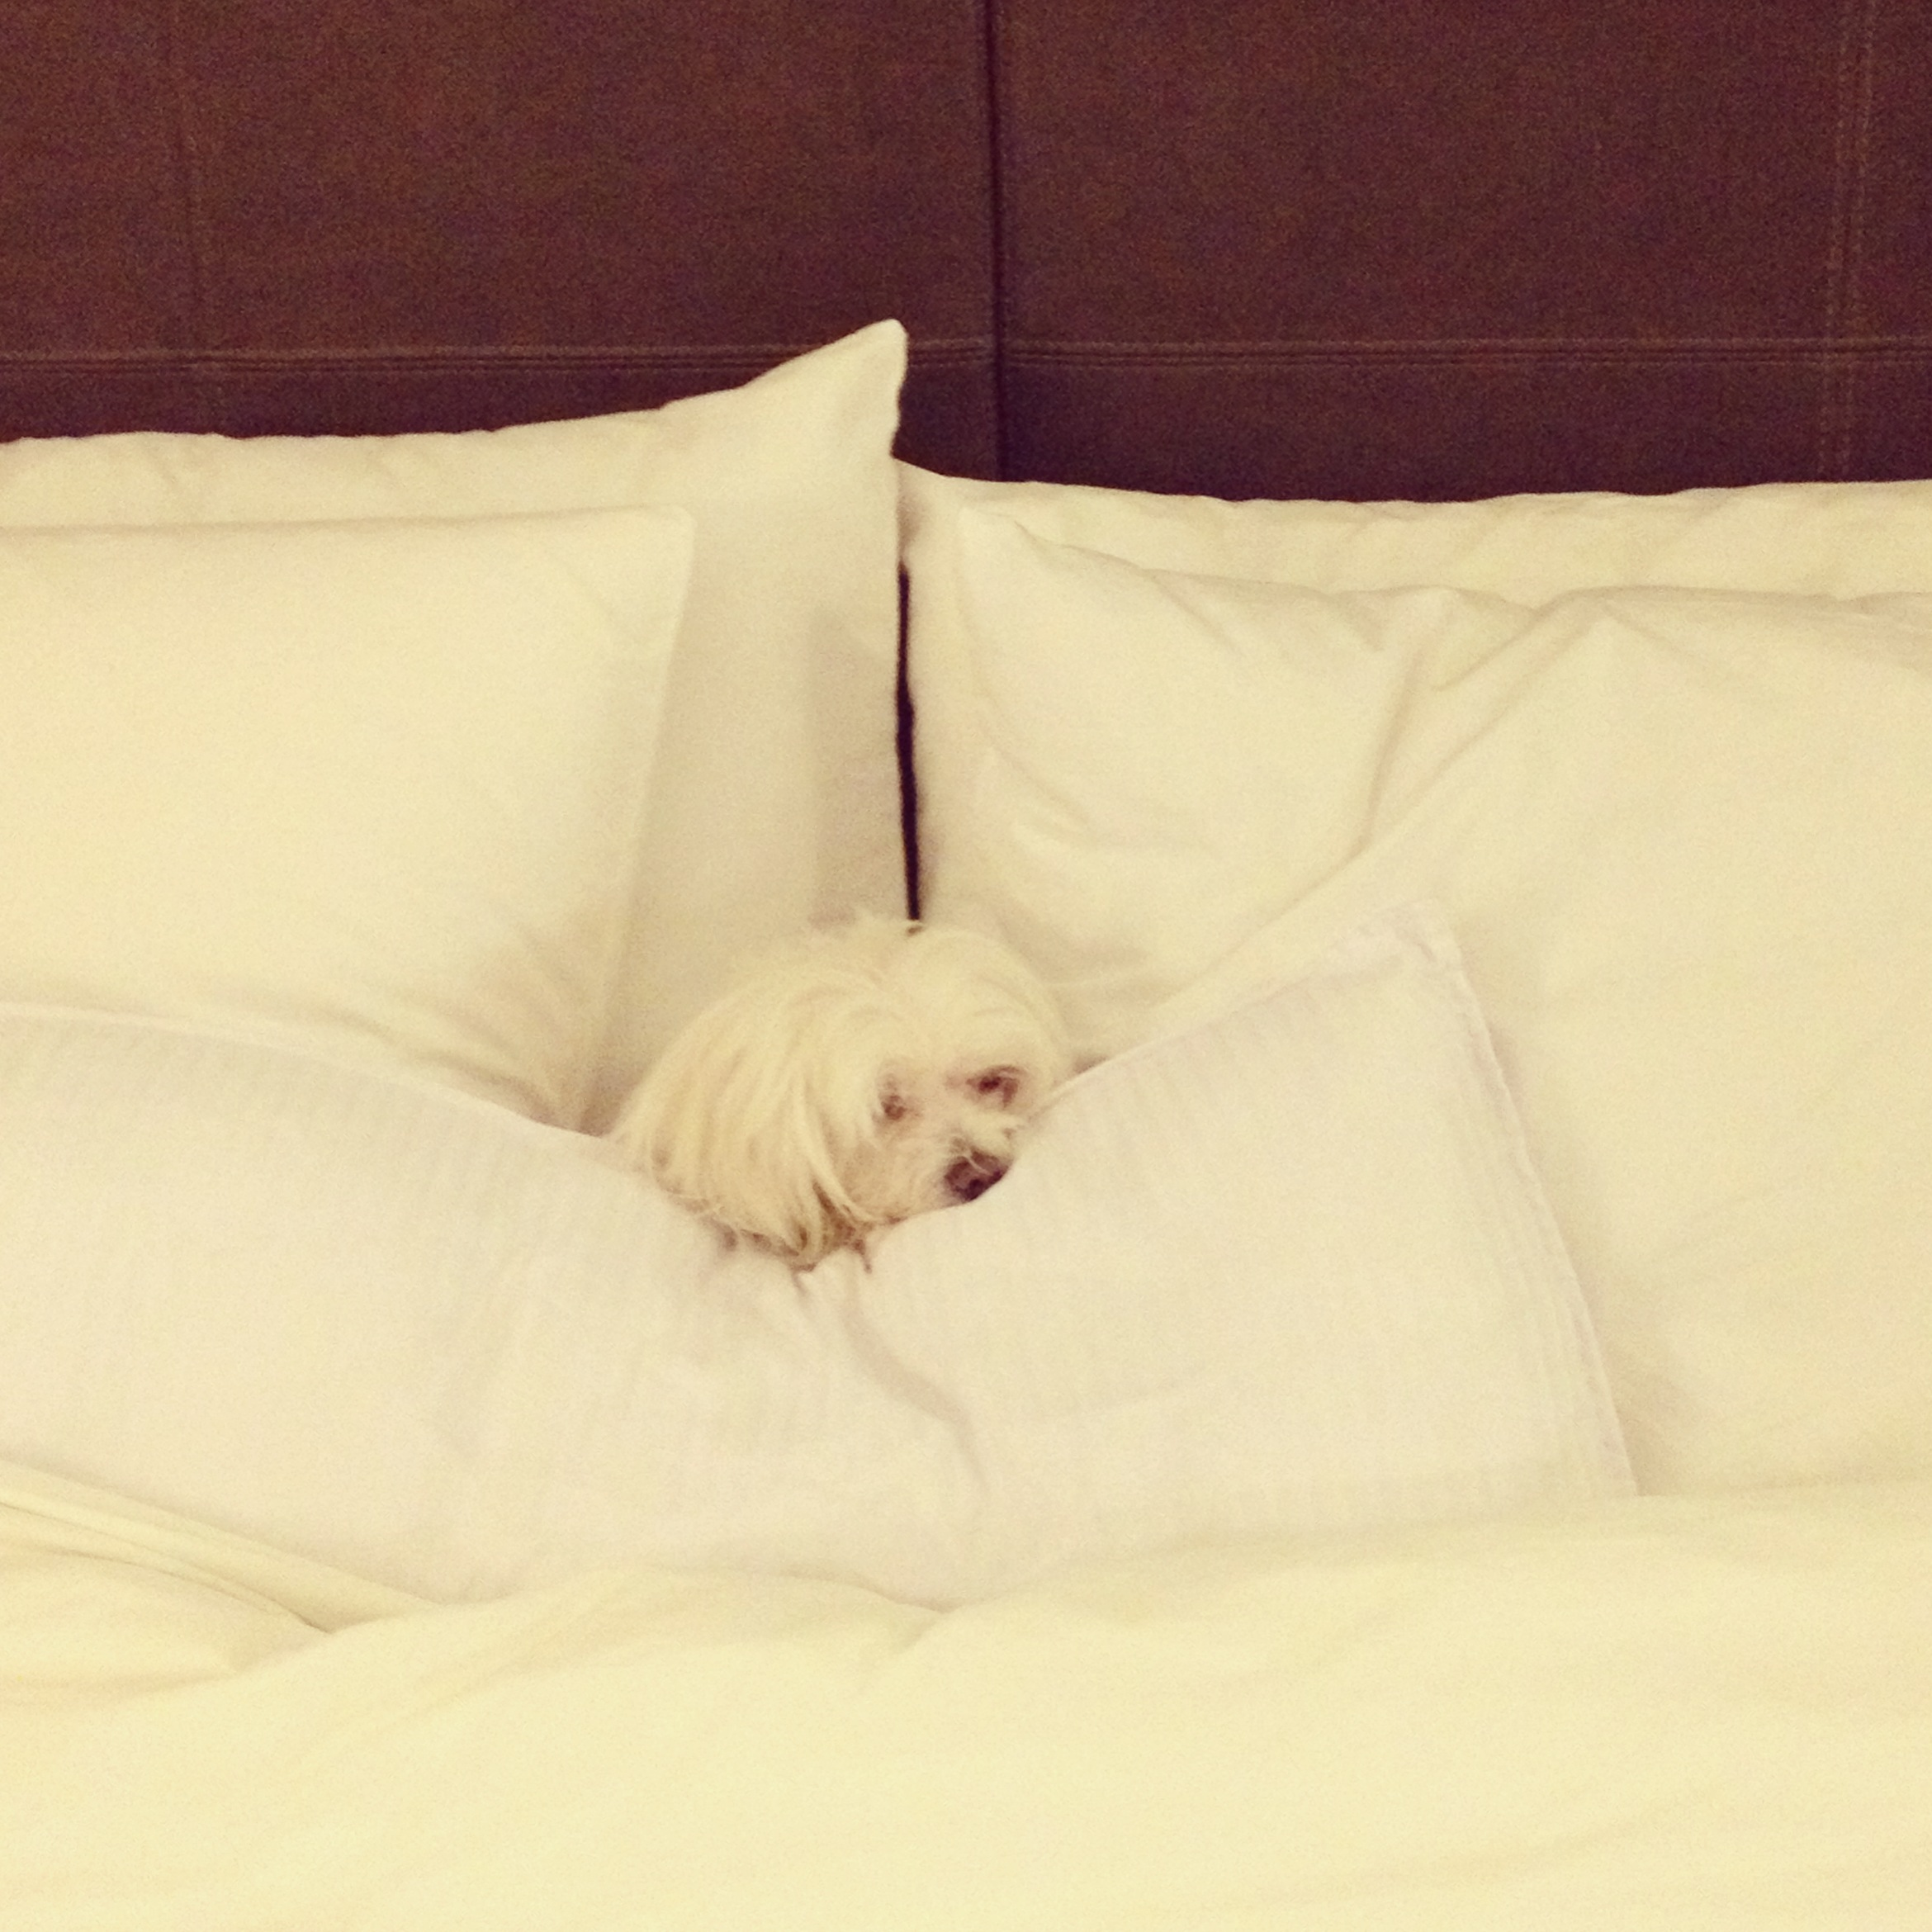 Back to the hotel after a long, hard day work at the show, Mochitucked herself in comfortably.